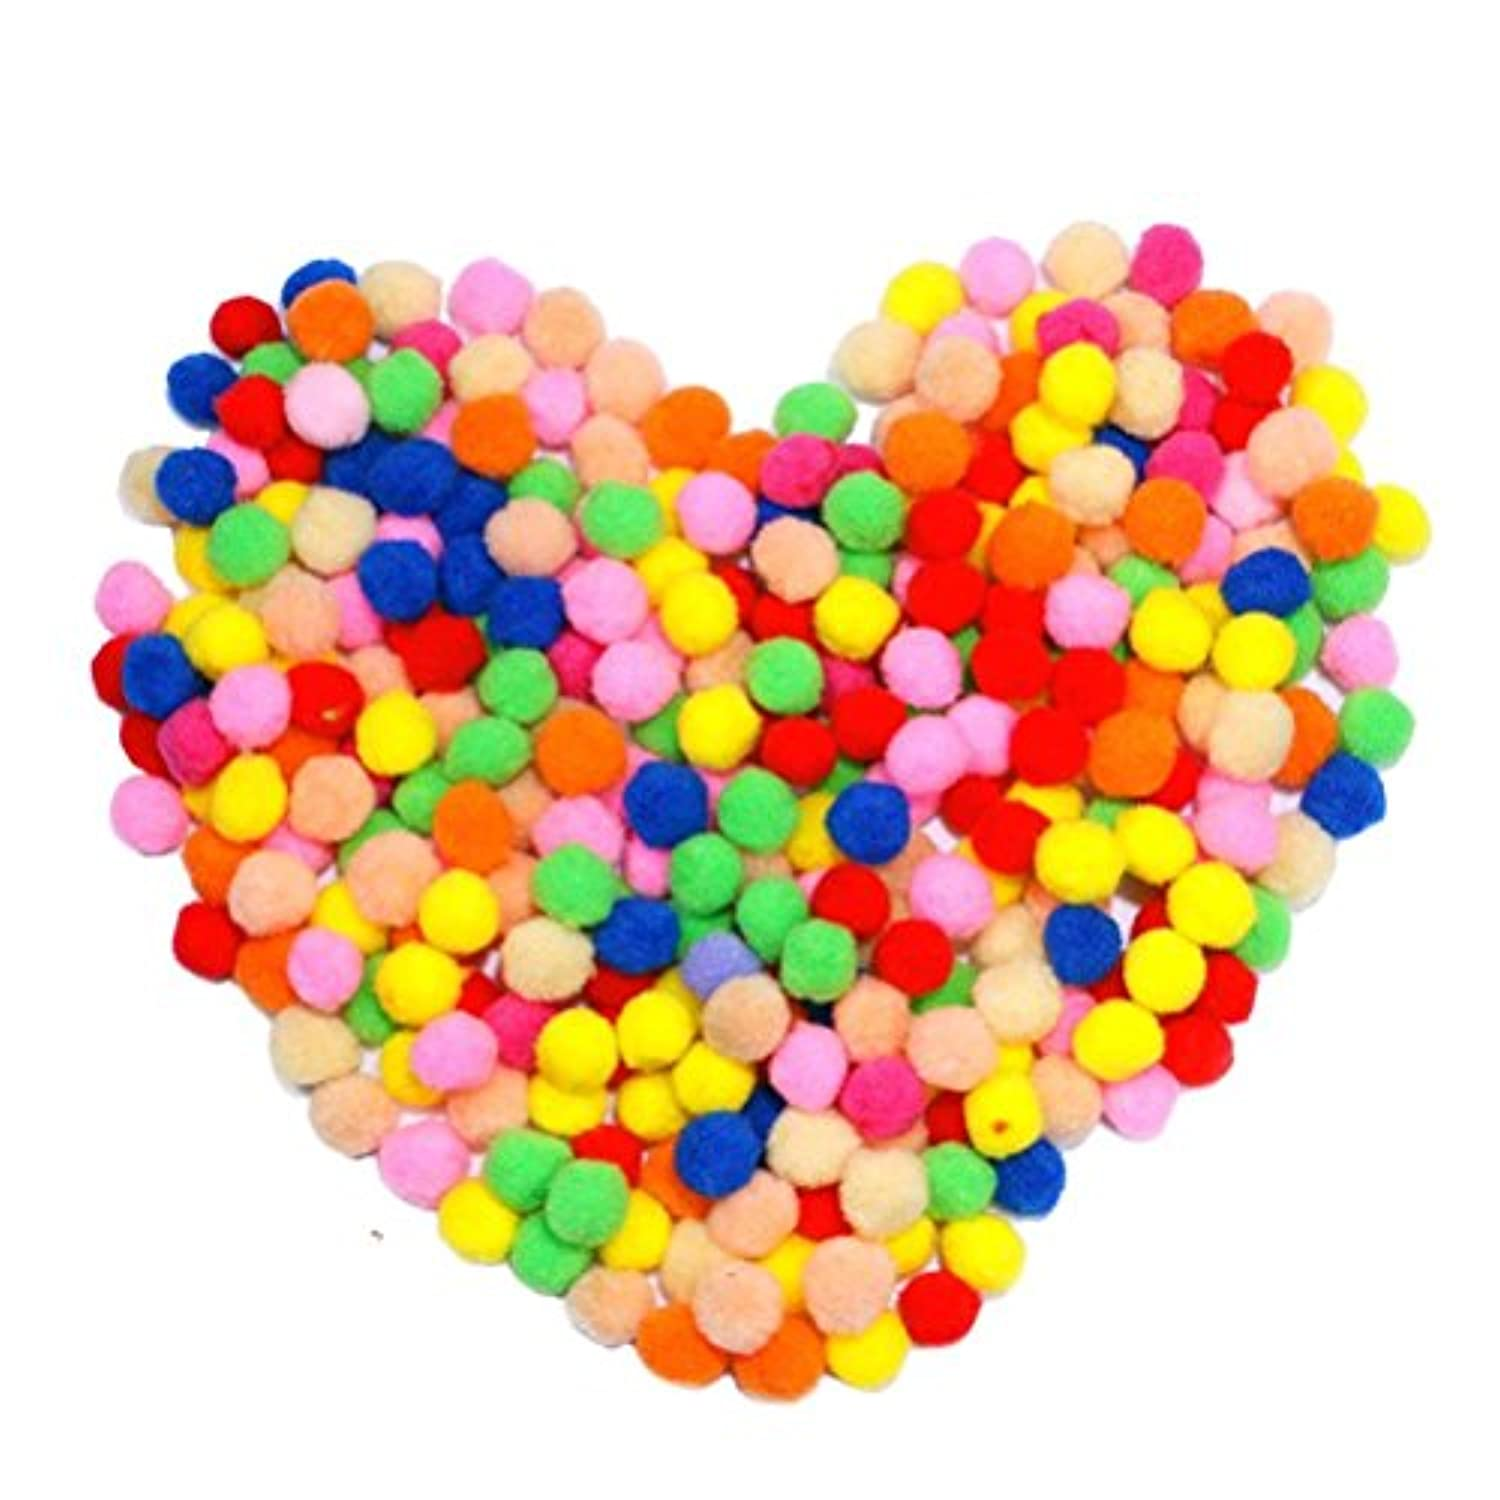 Pom Poms for Hobby Supplies and DIY Creative Crafts Decorations300 Pieces 1 Inch Assorted Colors [並行輸入品]